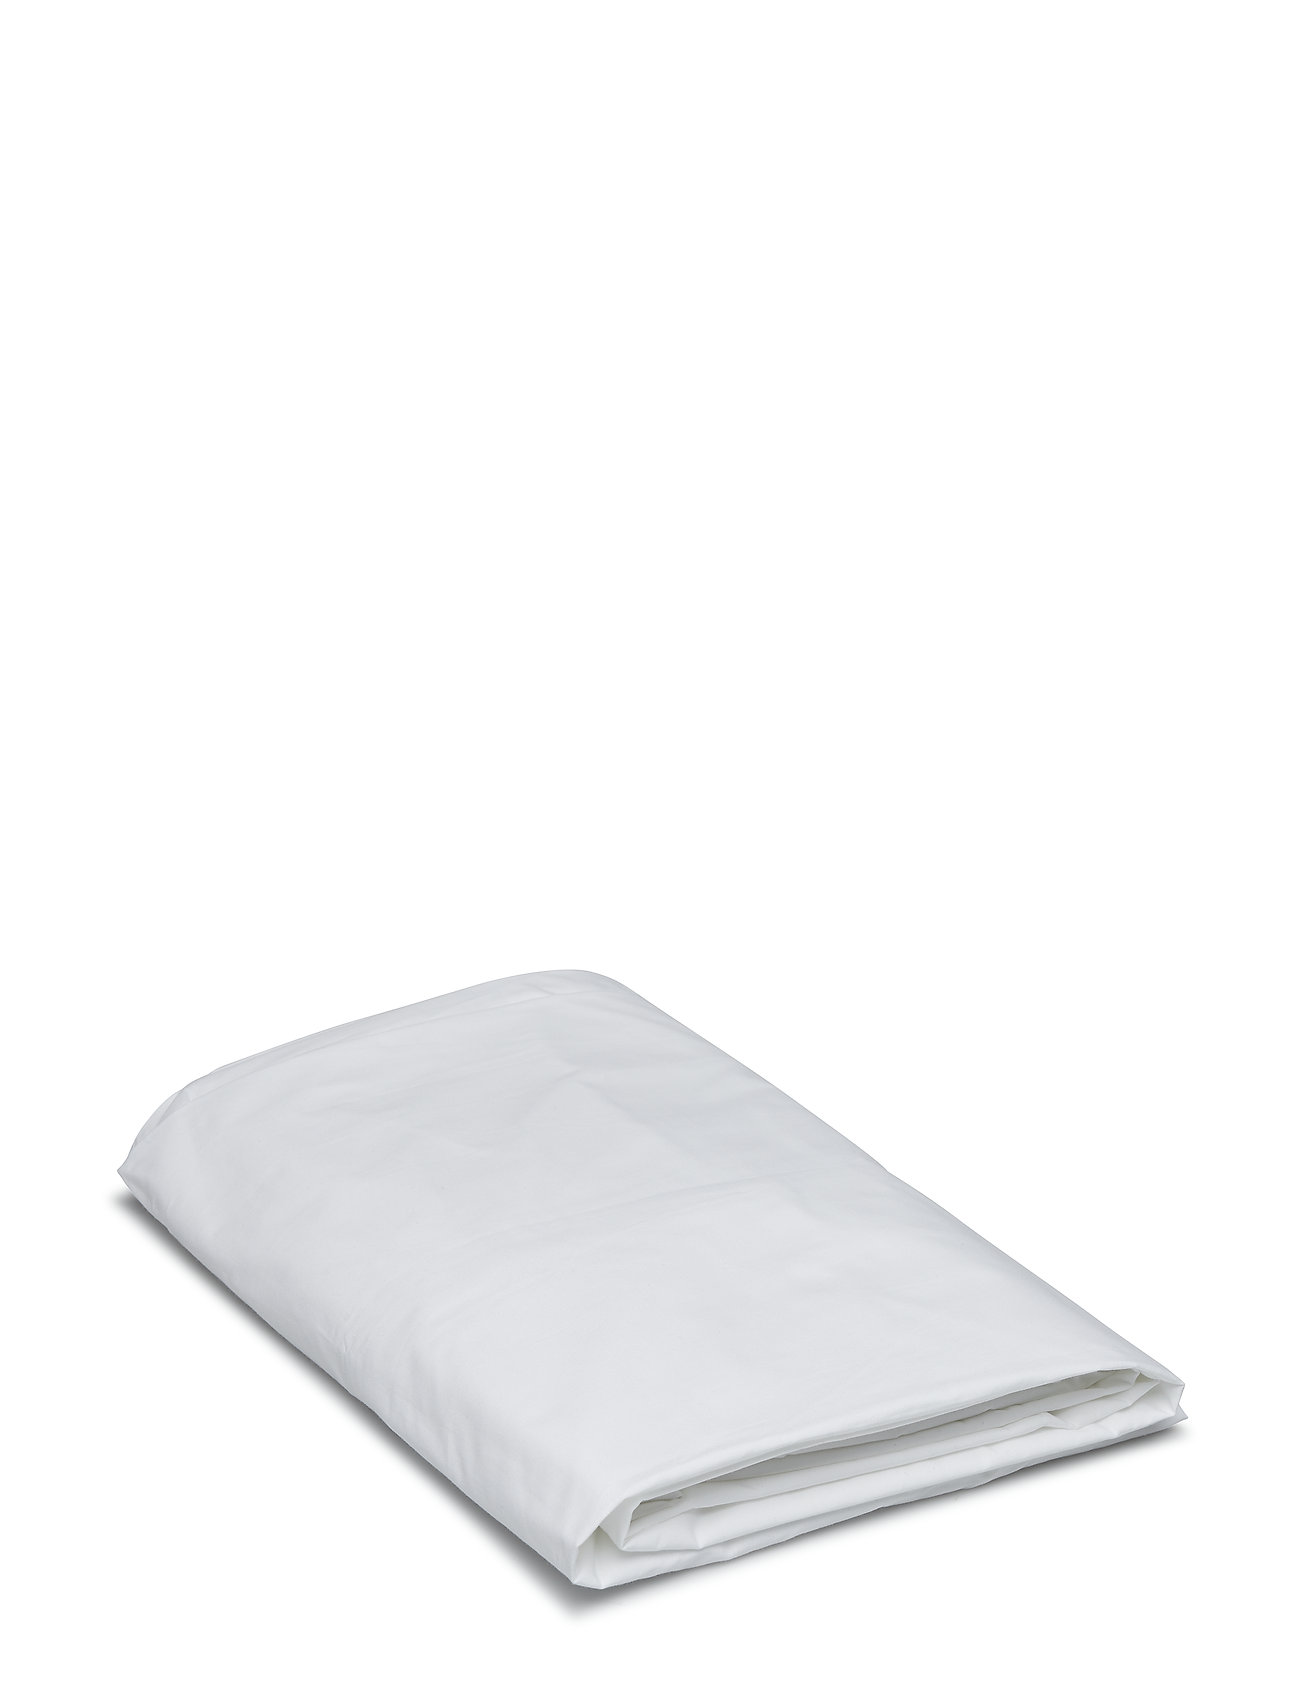 Gripsholm FITTED SHEET PERCALE - WHITE